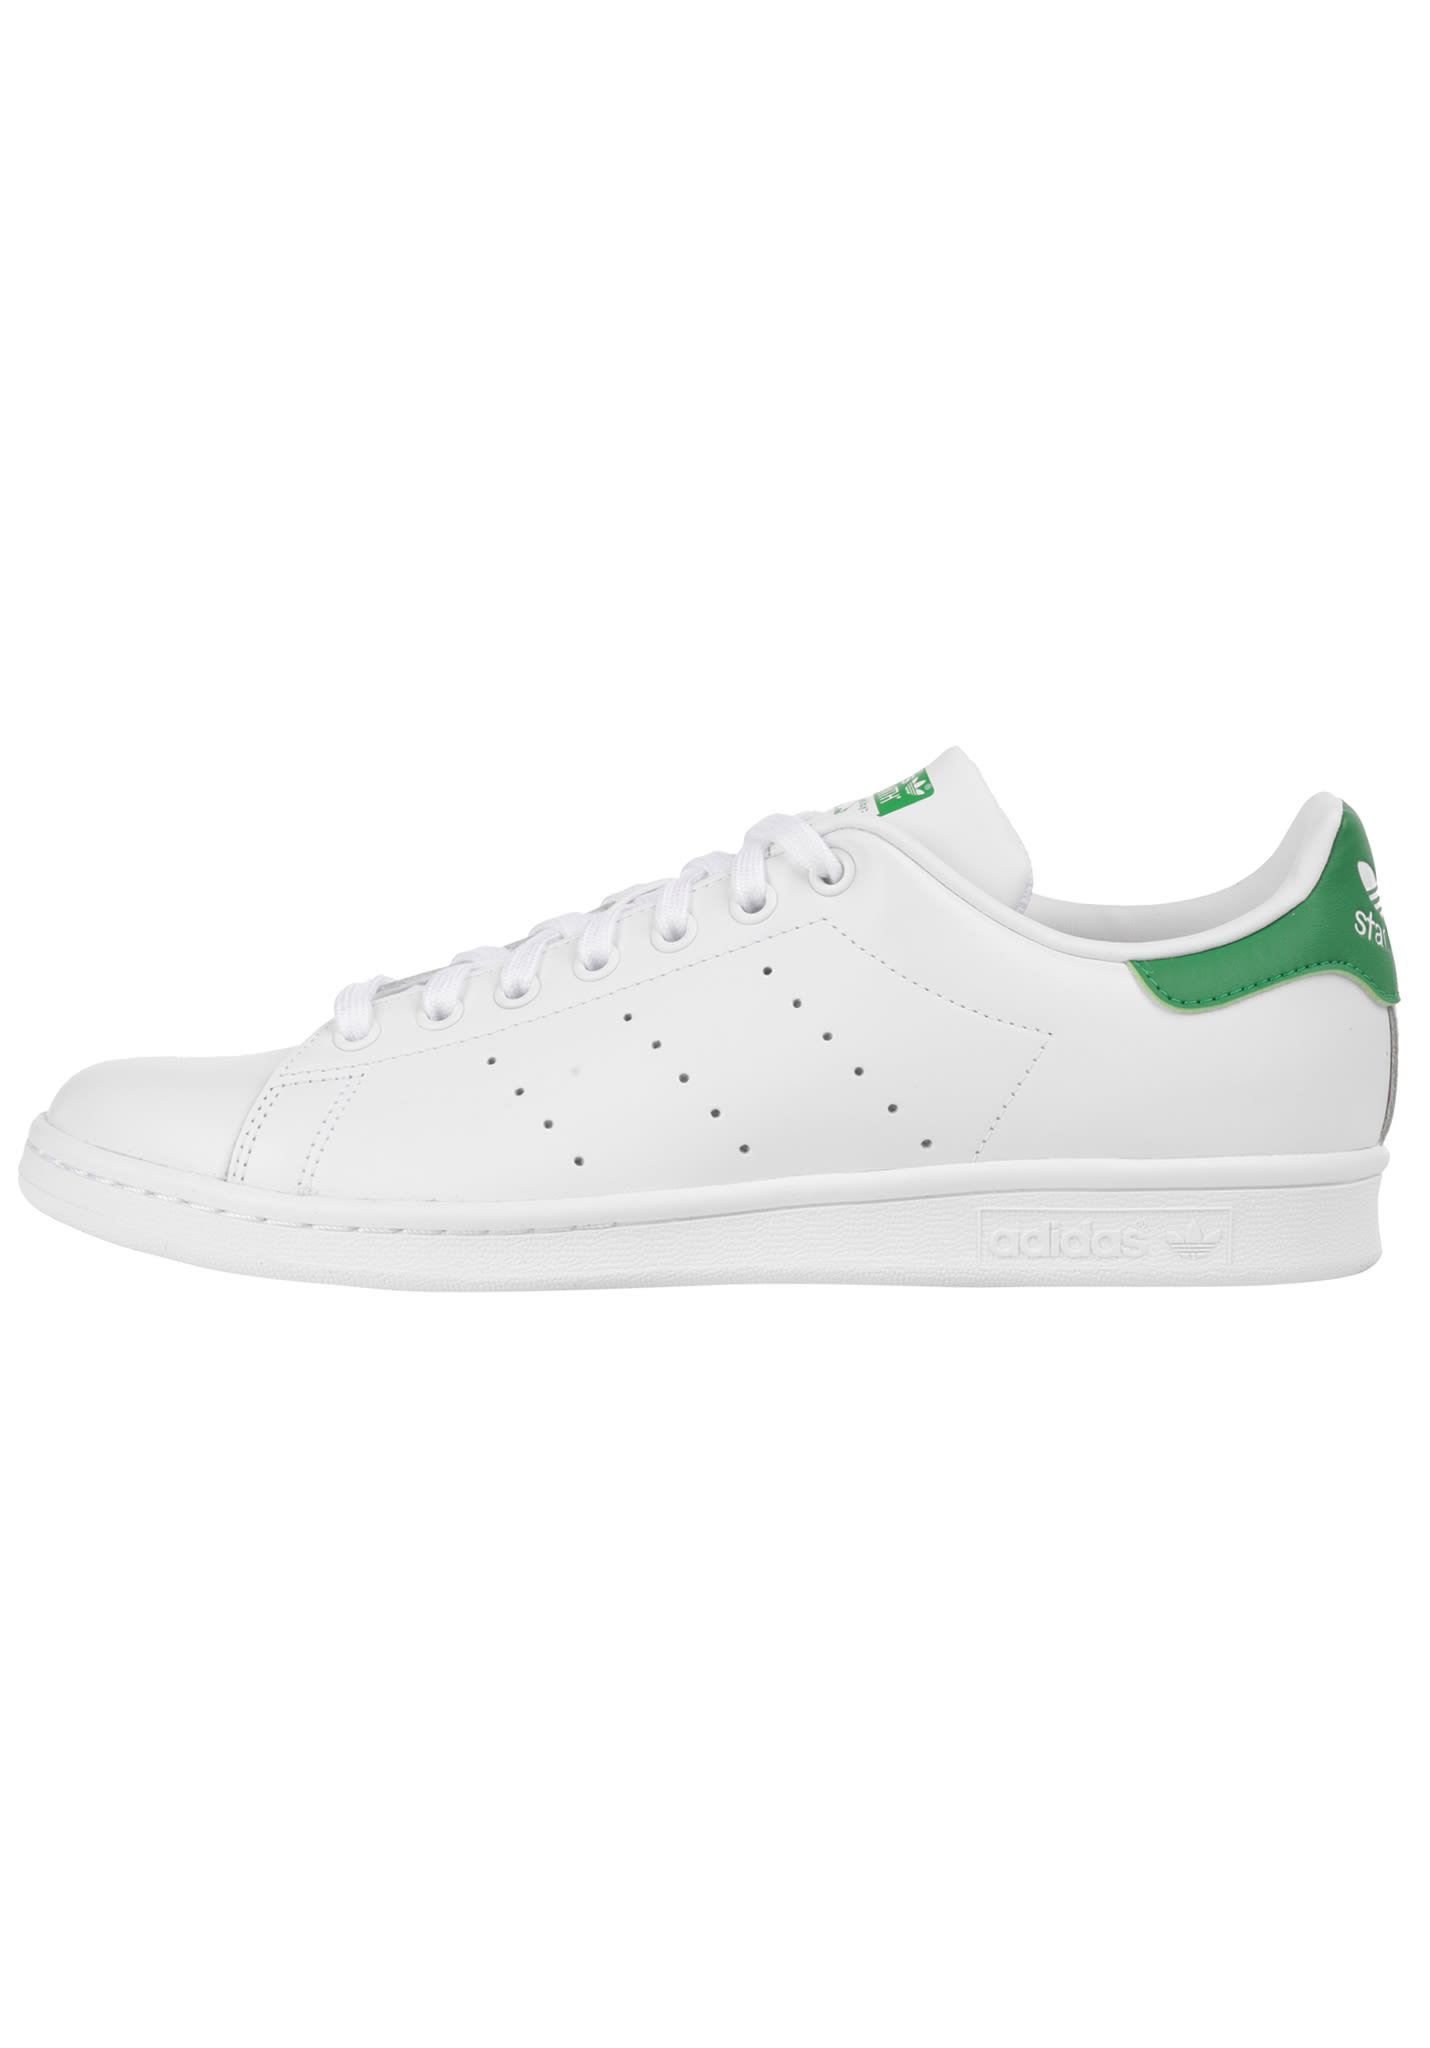 Adidas Stan Smith Weiß Herren